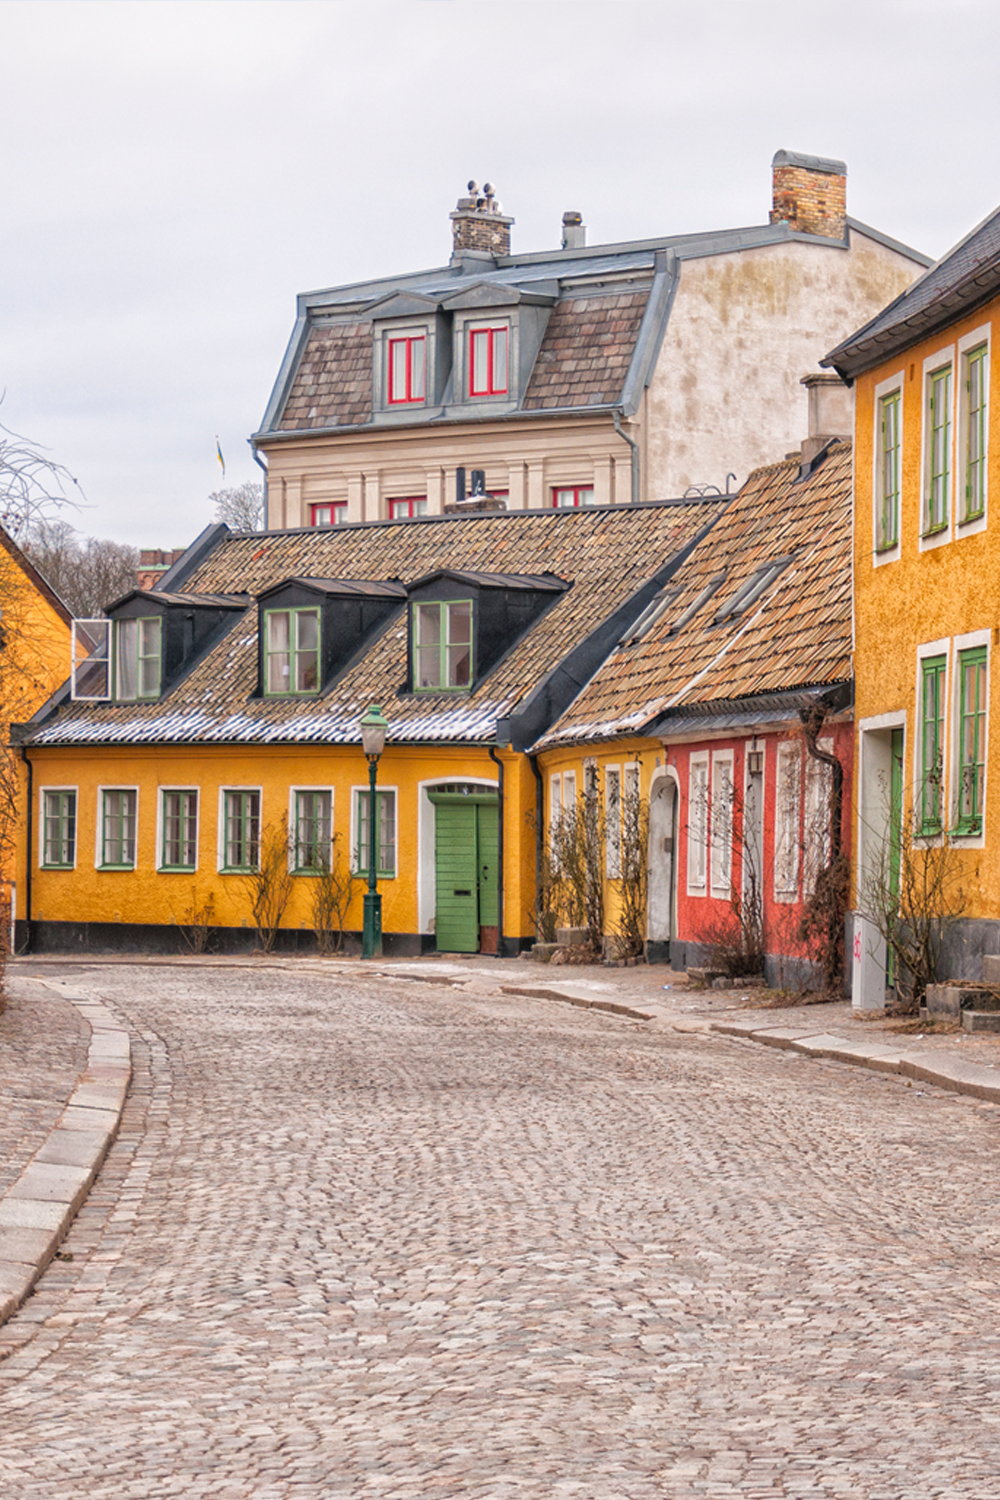 Cobblestone pathway and traditional houses in Lund Sweden